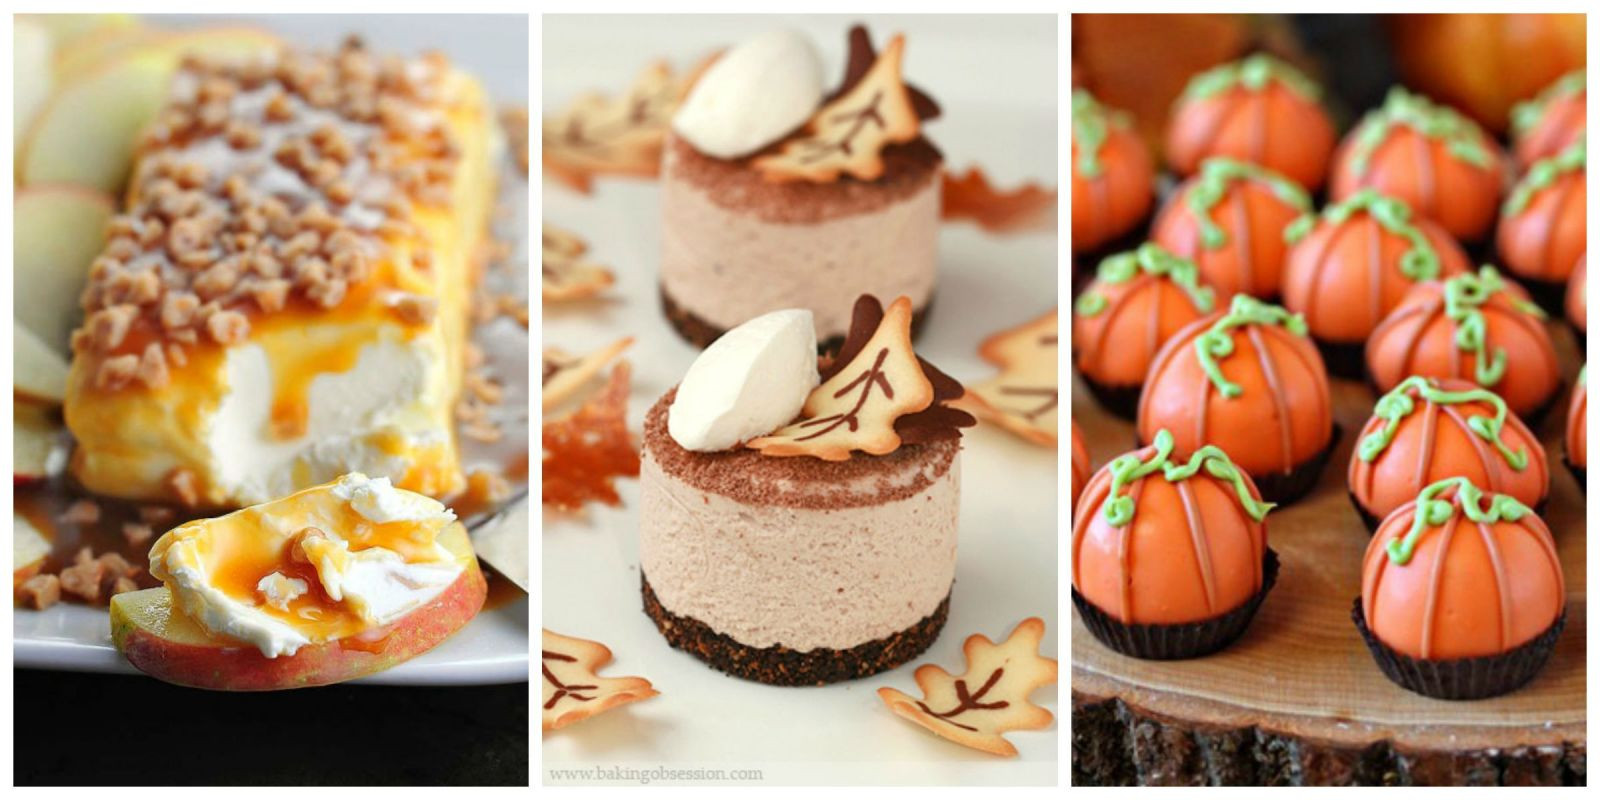 Easy Fall Desserts For A Crowd  35 Easy Fall Dessert Recipes Best Treats for Autumn Parties